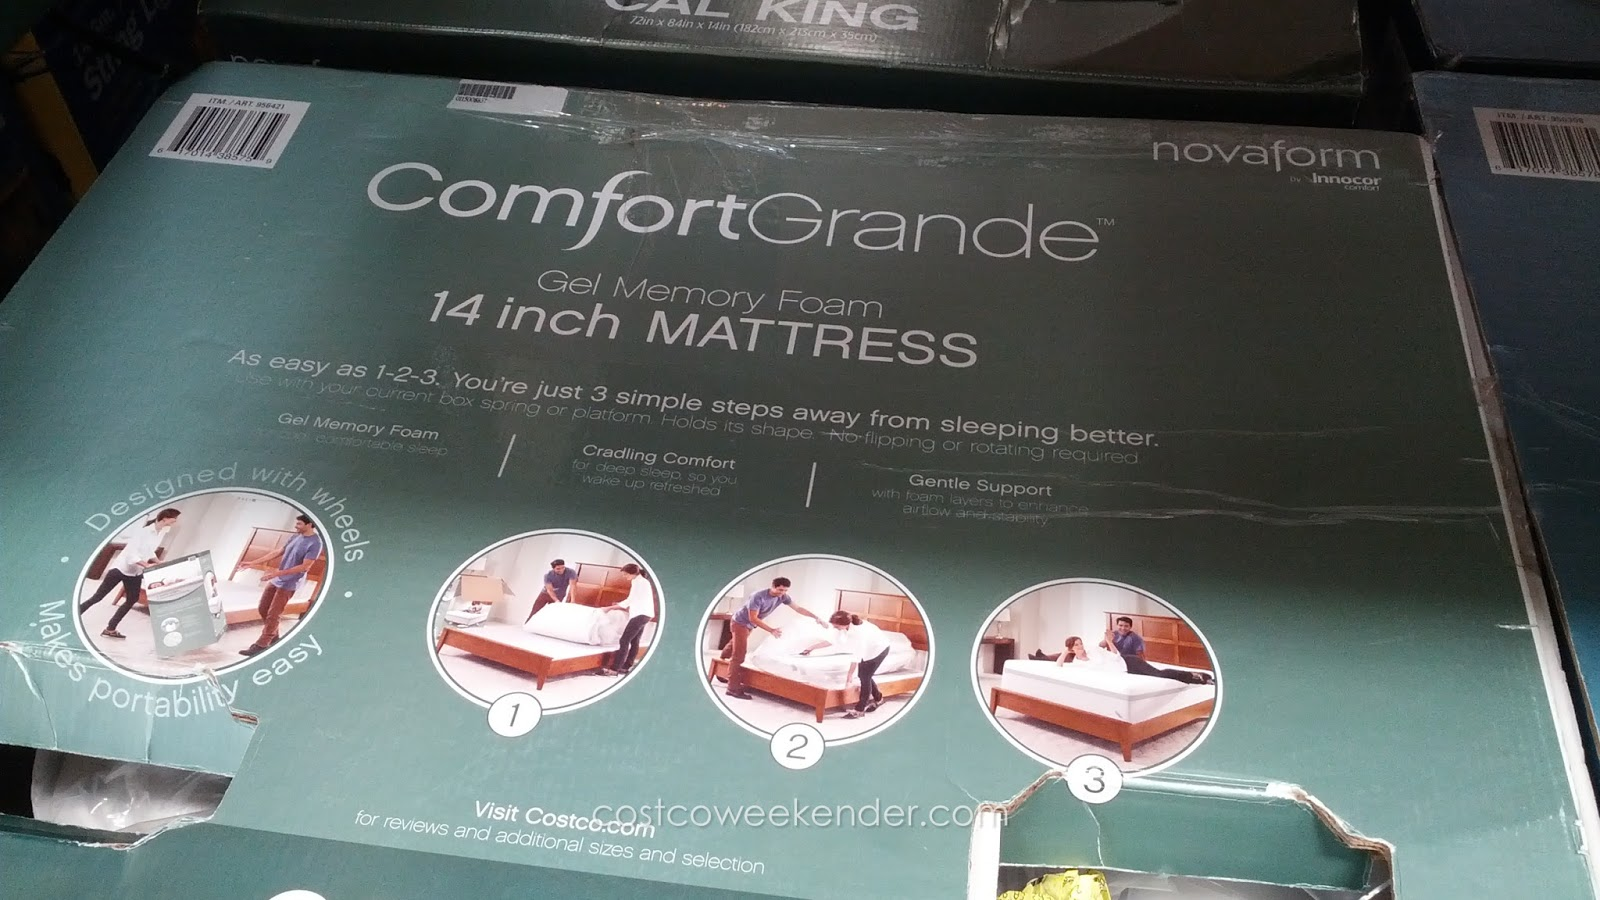 novaform 14 comfort grande gel memory foam king mattress. innocor comfort novaform comfortgrande cal king mattress for a good night\u0027s rest 14 grande gel memory foam